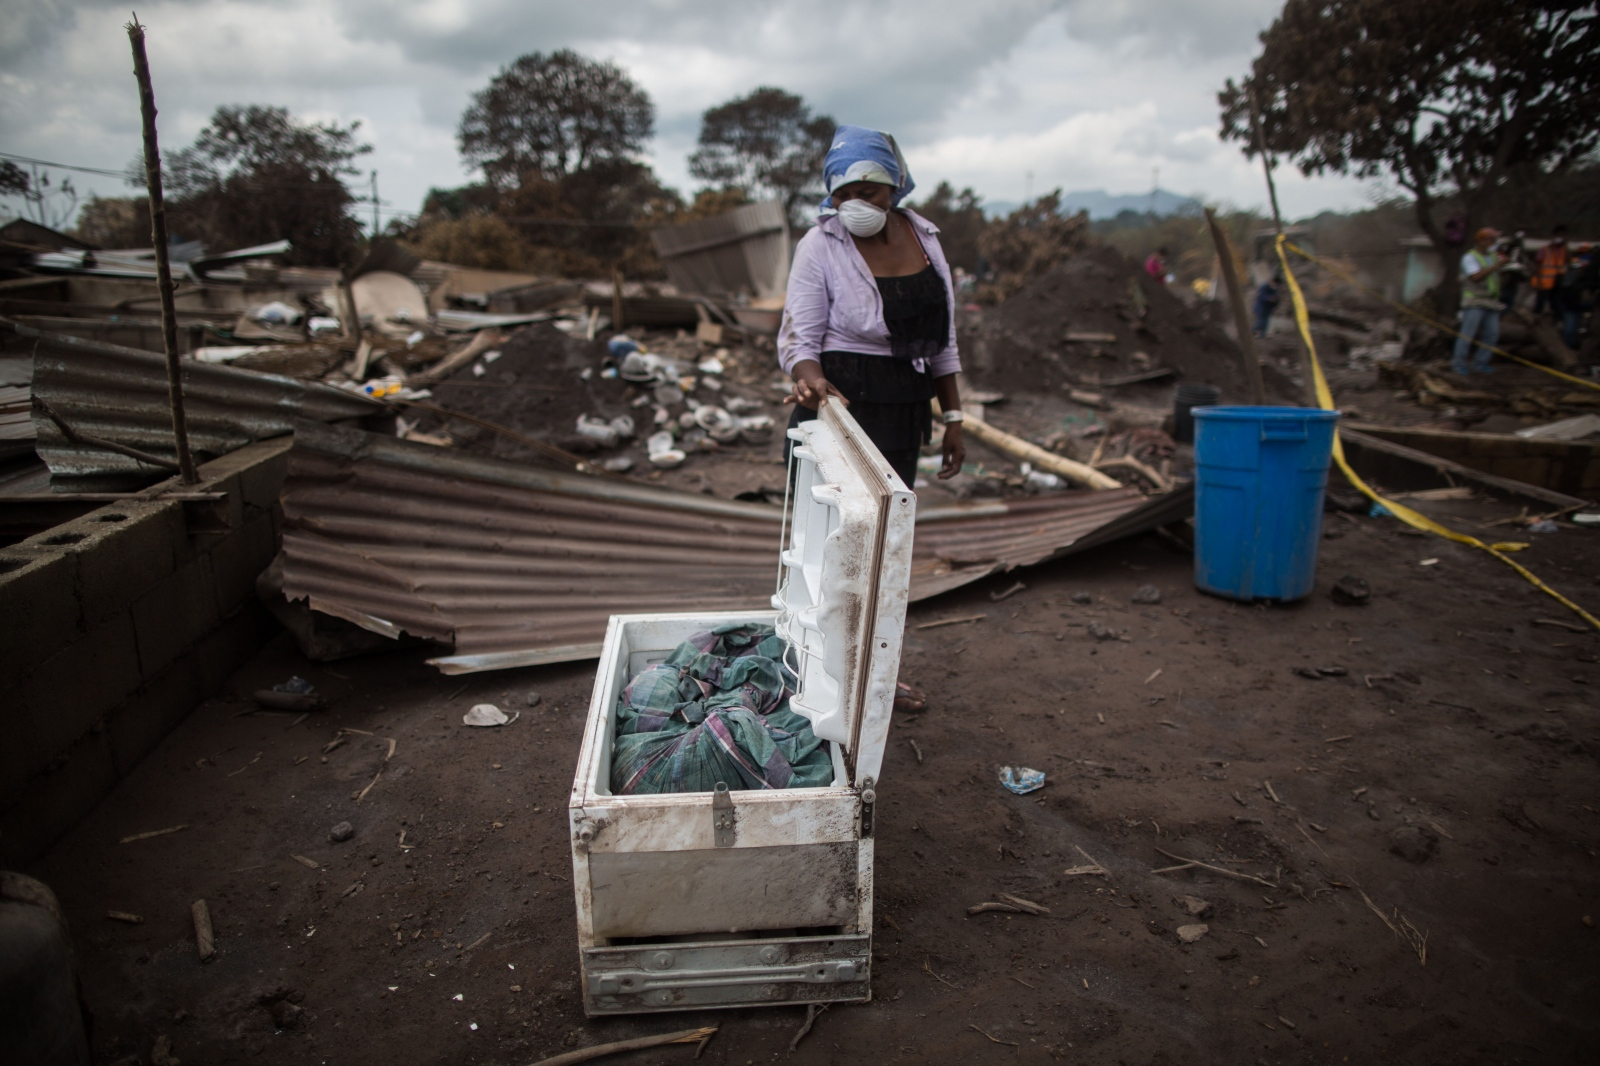 Photography image -  Eufemia García Ixpata observes a refrigerator with the remains that she believes are from her brother-in-law, found in one of the homes of her family, after the eruption of the Volcán de Fuego in San Miguel Los Lotes in Guatemala.